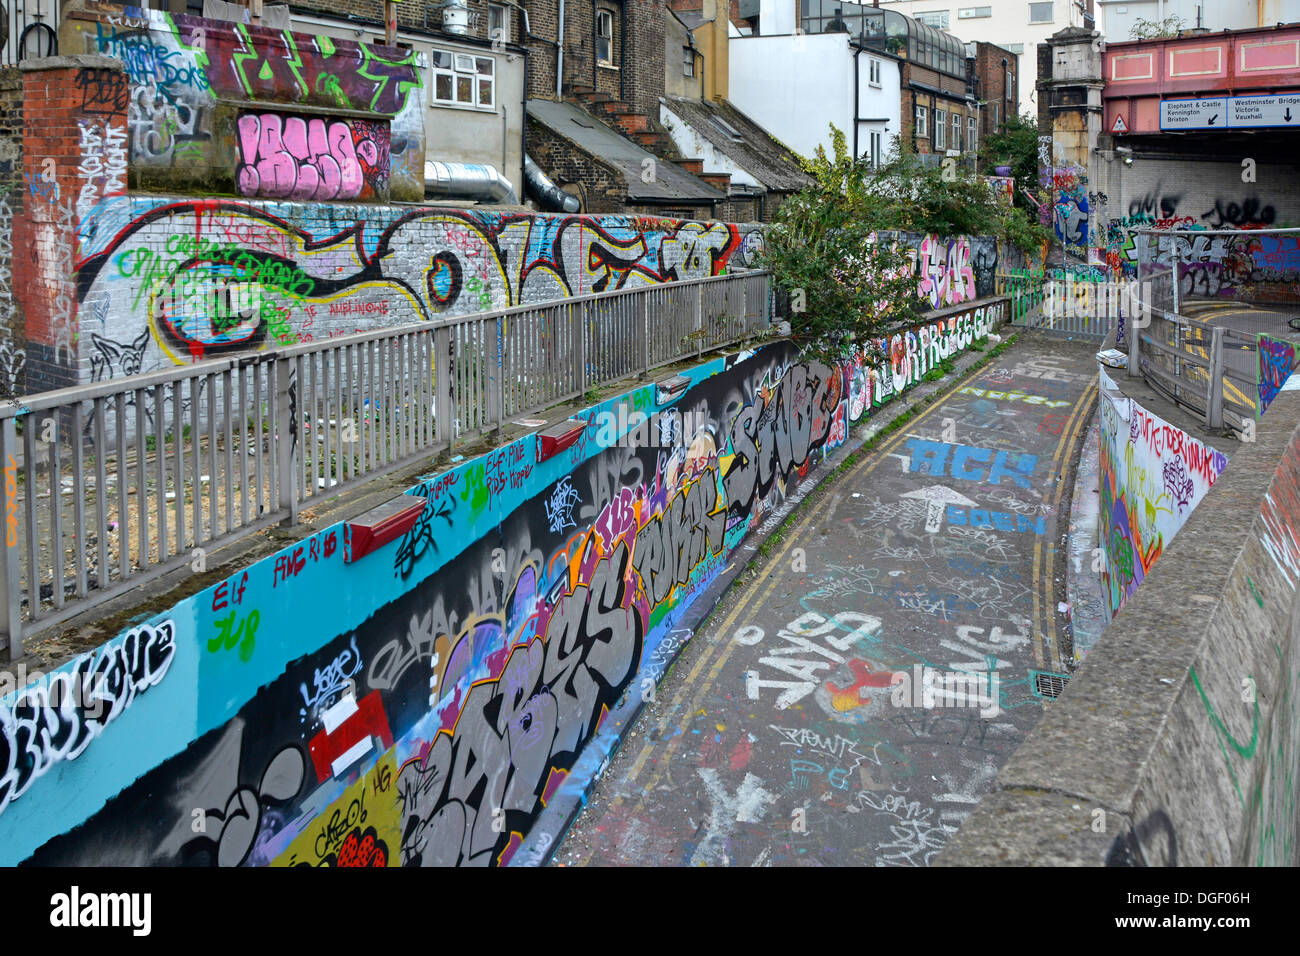 Closed off narrow street and adjacent walls and buildings covered in graffiti - Stock Image